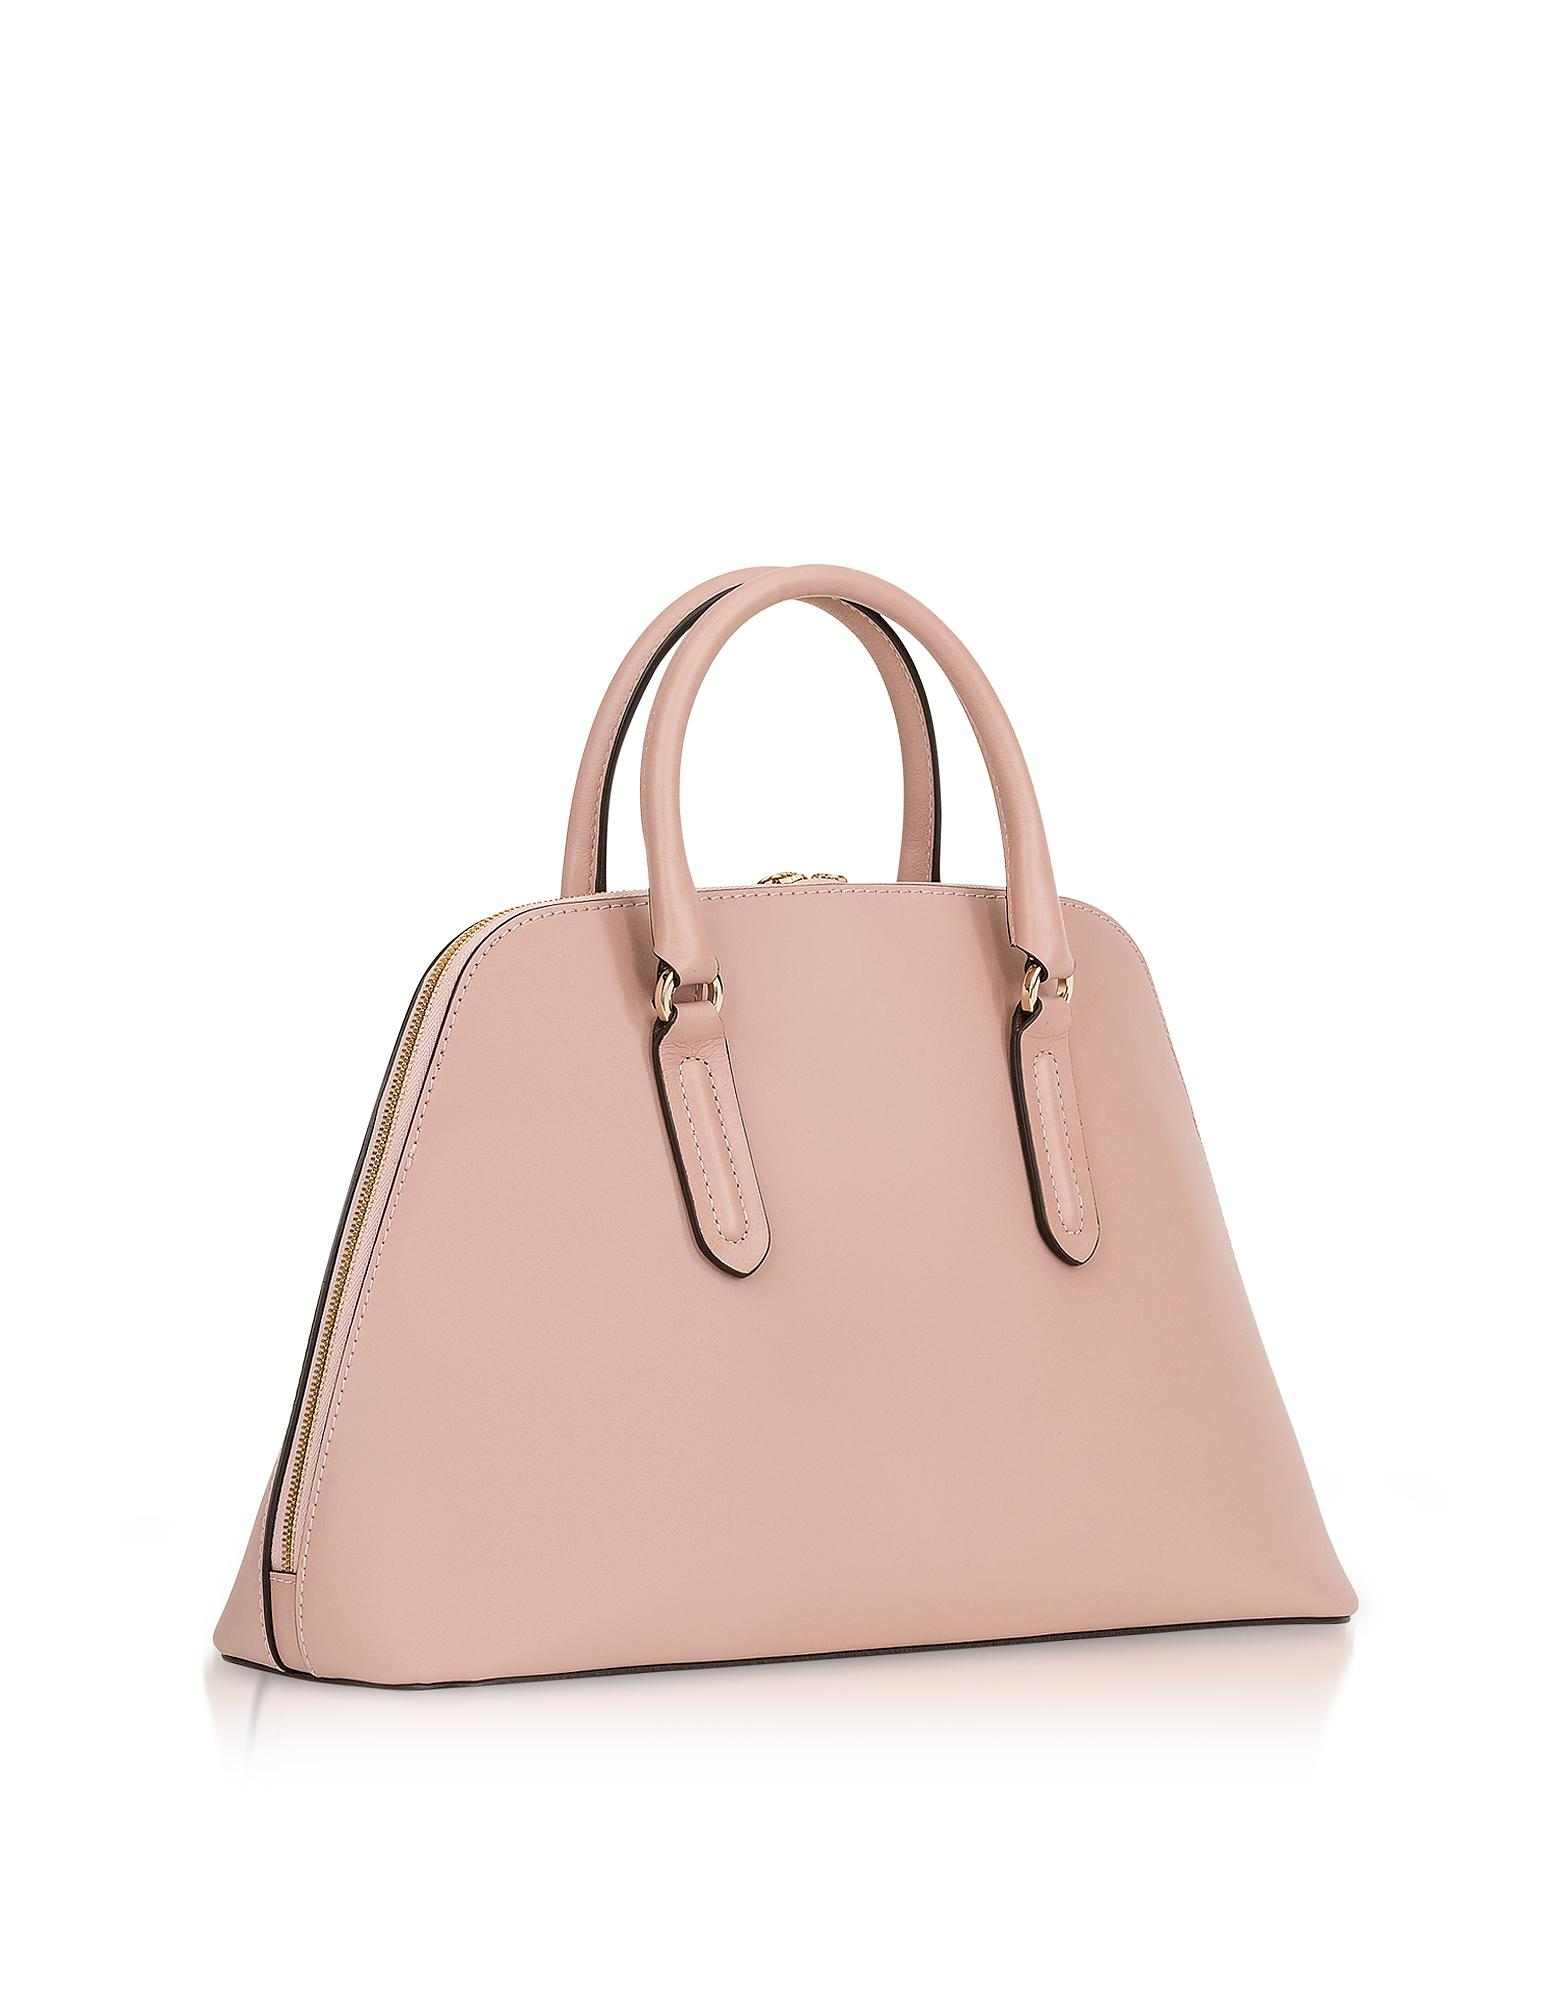 Milano Medium Tote Bag in Moonstone Calfskin Furla meU8uvkuz